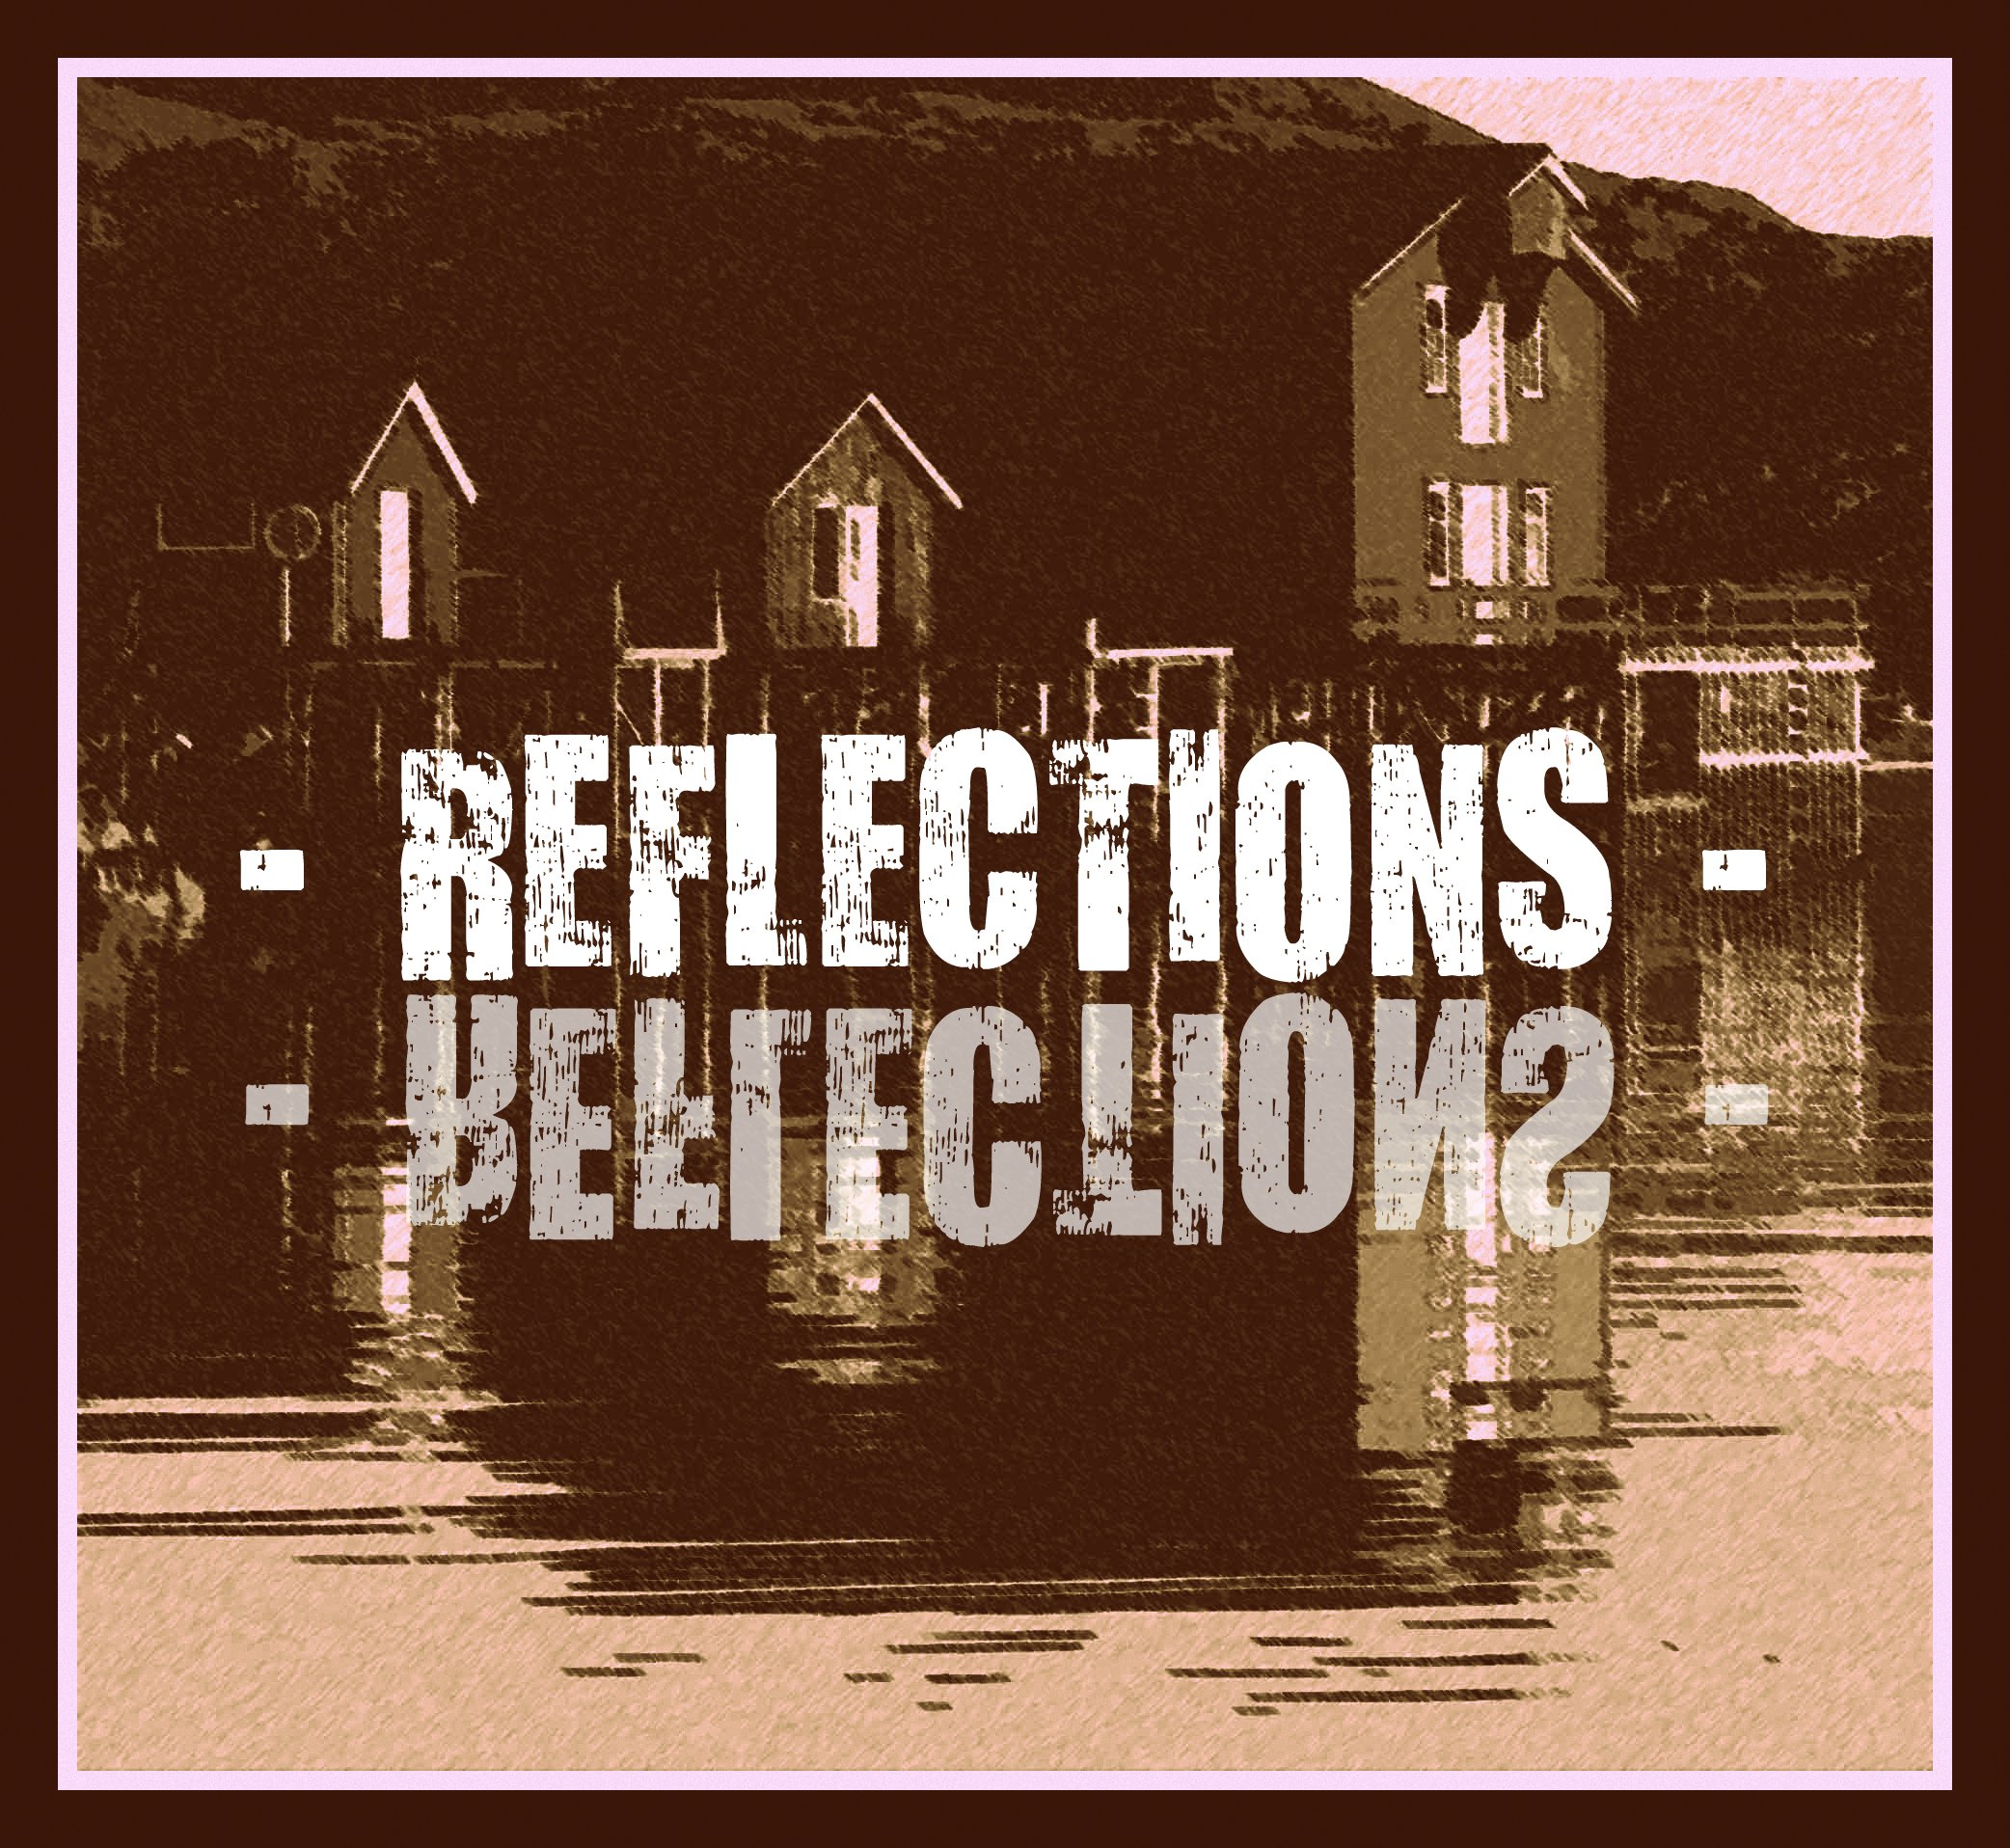 - REFLECTIONS -